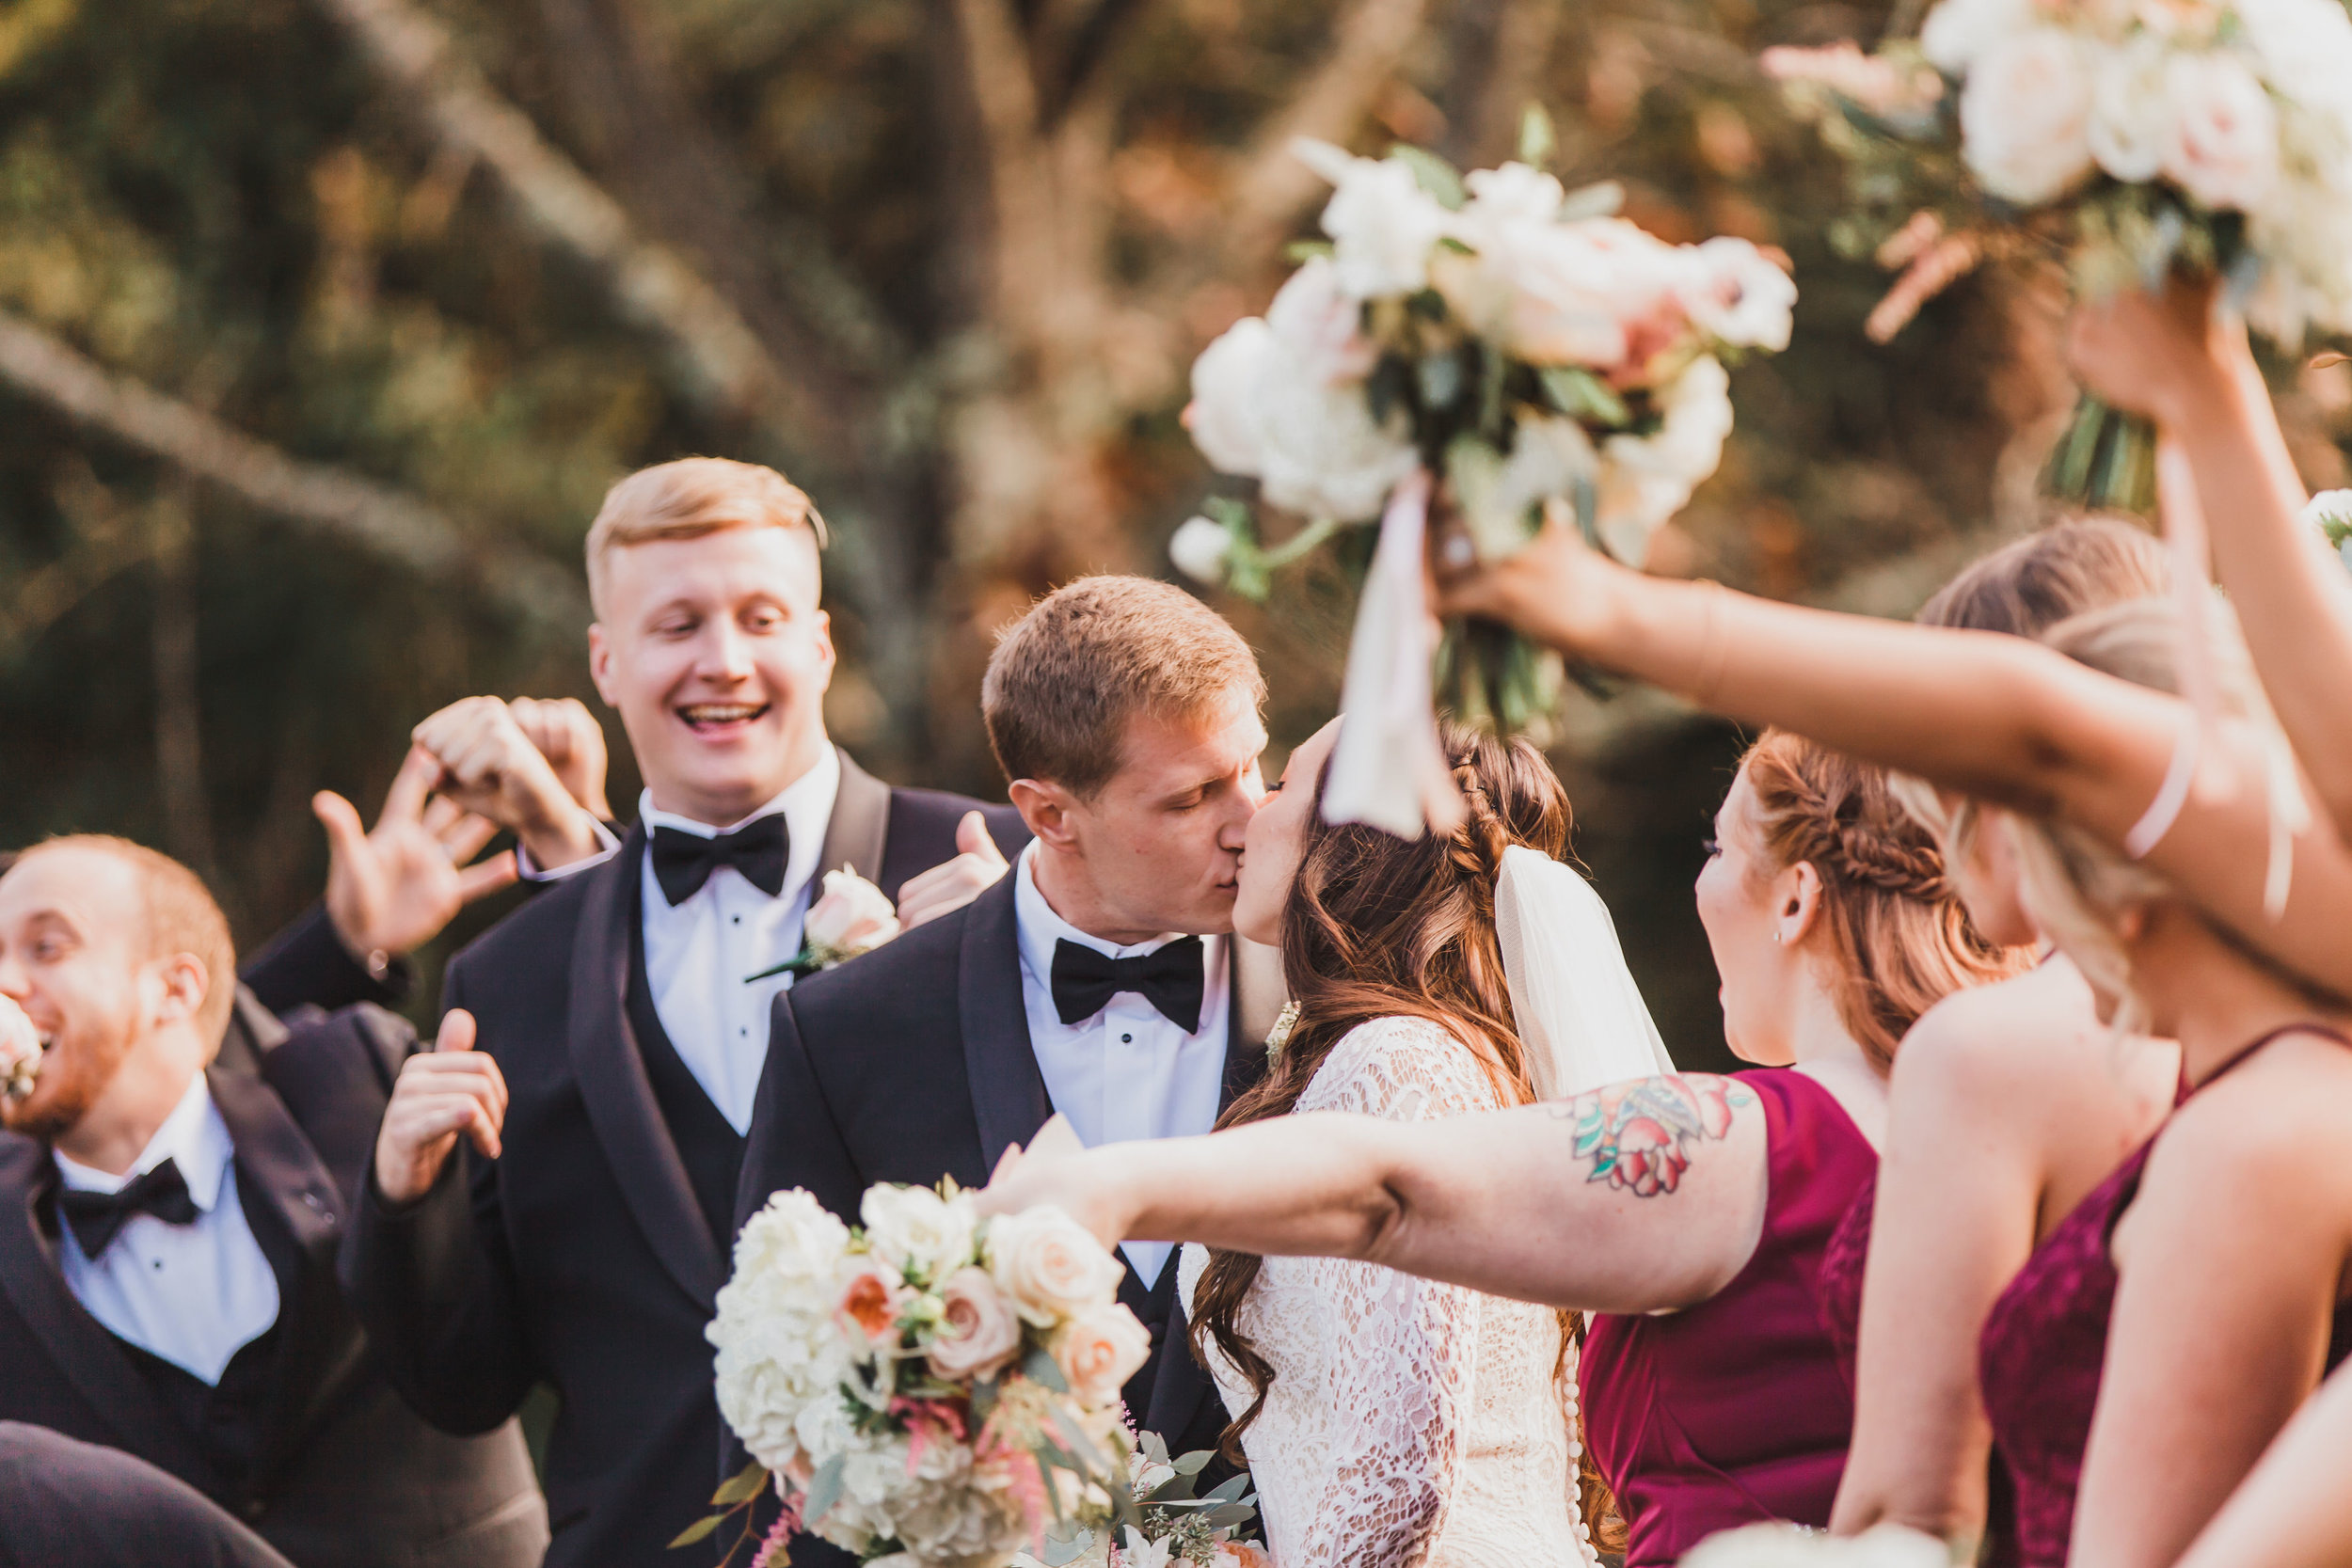 The Short & Sweet Package - A budget friendly wedding for couples who are looking to skip the stress and have an all inclusive beautiful day!